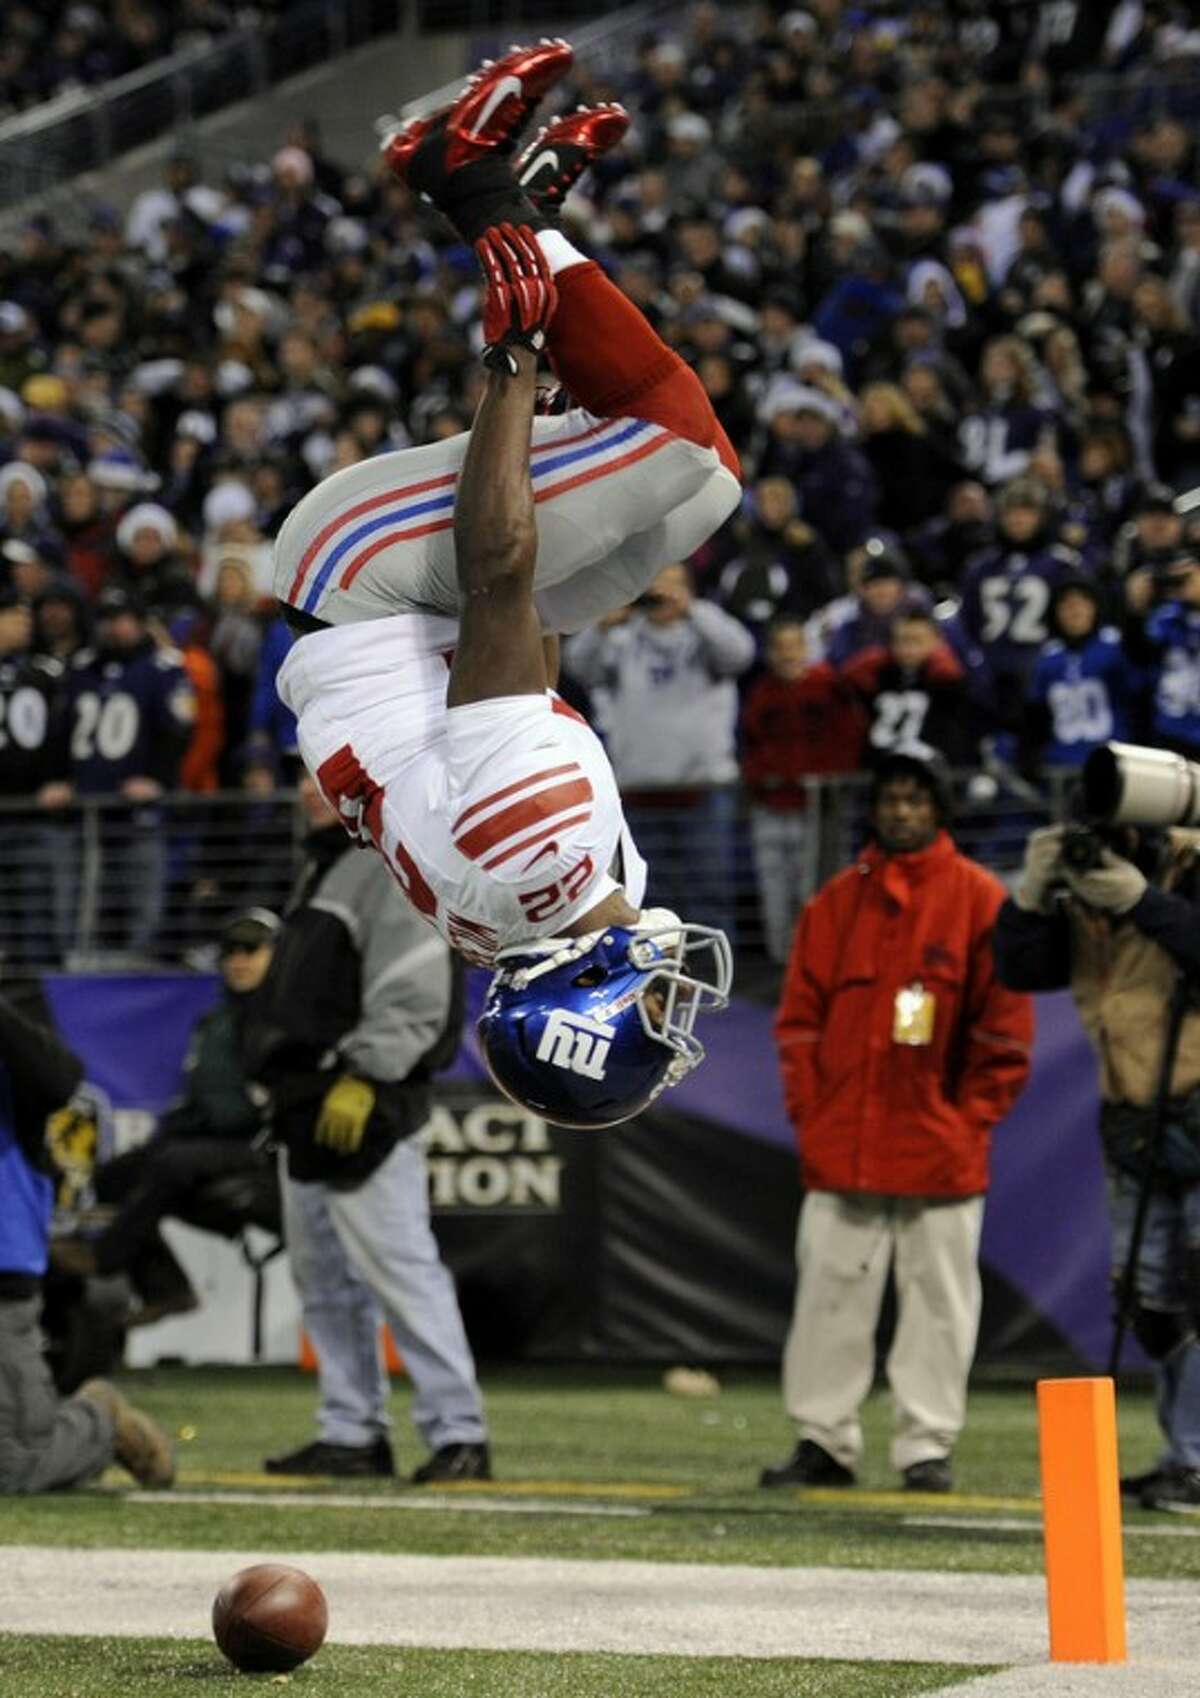 New York Giants running back David Wilson flips after scoring a touchdown in the first half of an NFL football game against the Baltimore Ravens in Baltimore, Sunday, Dec. 23, 2012. (AP Photo/Nick Wass)